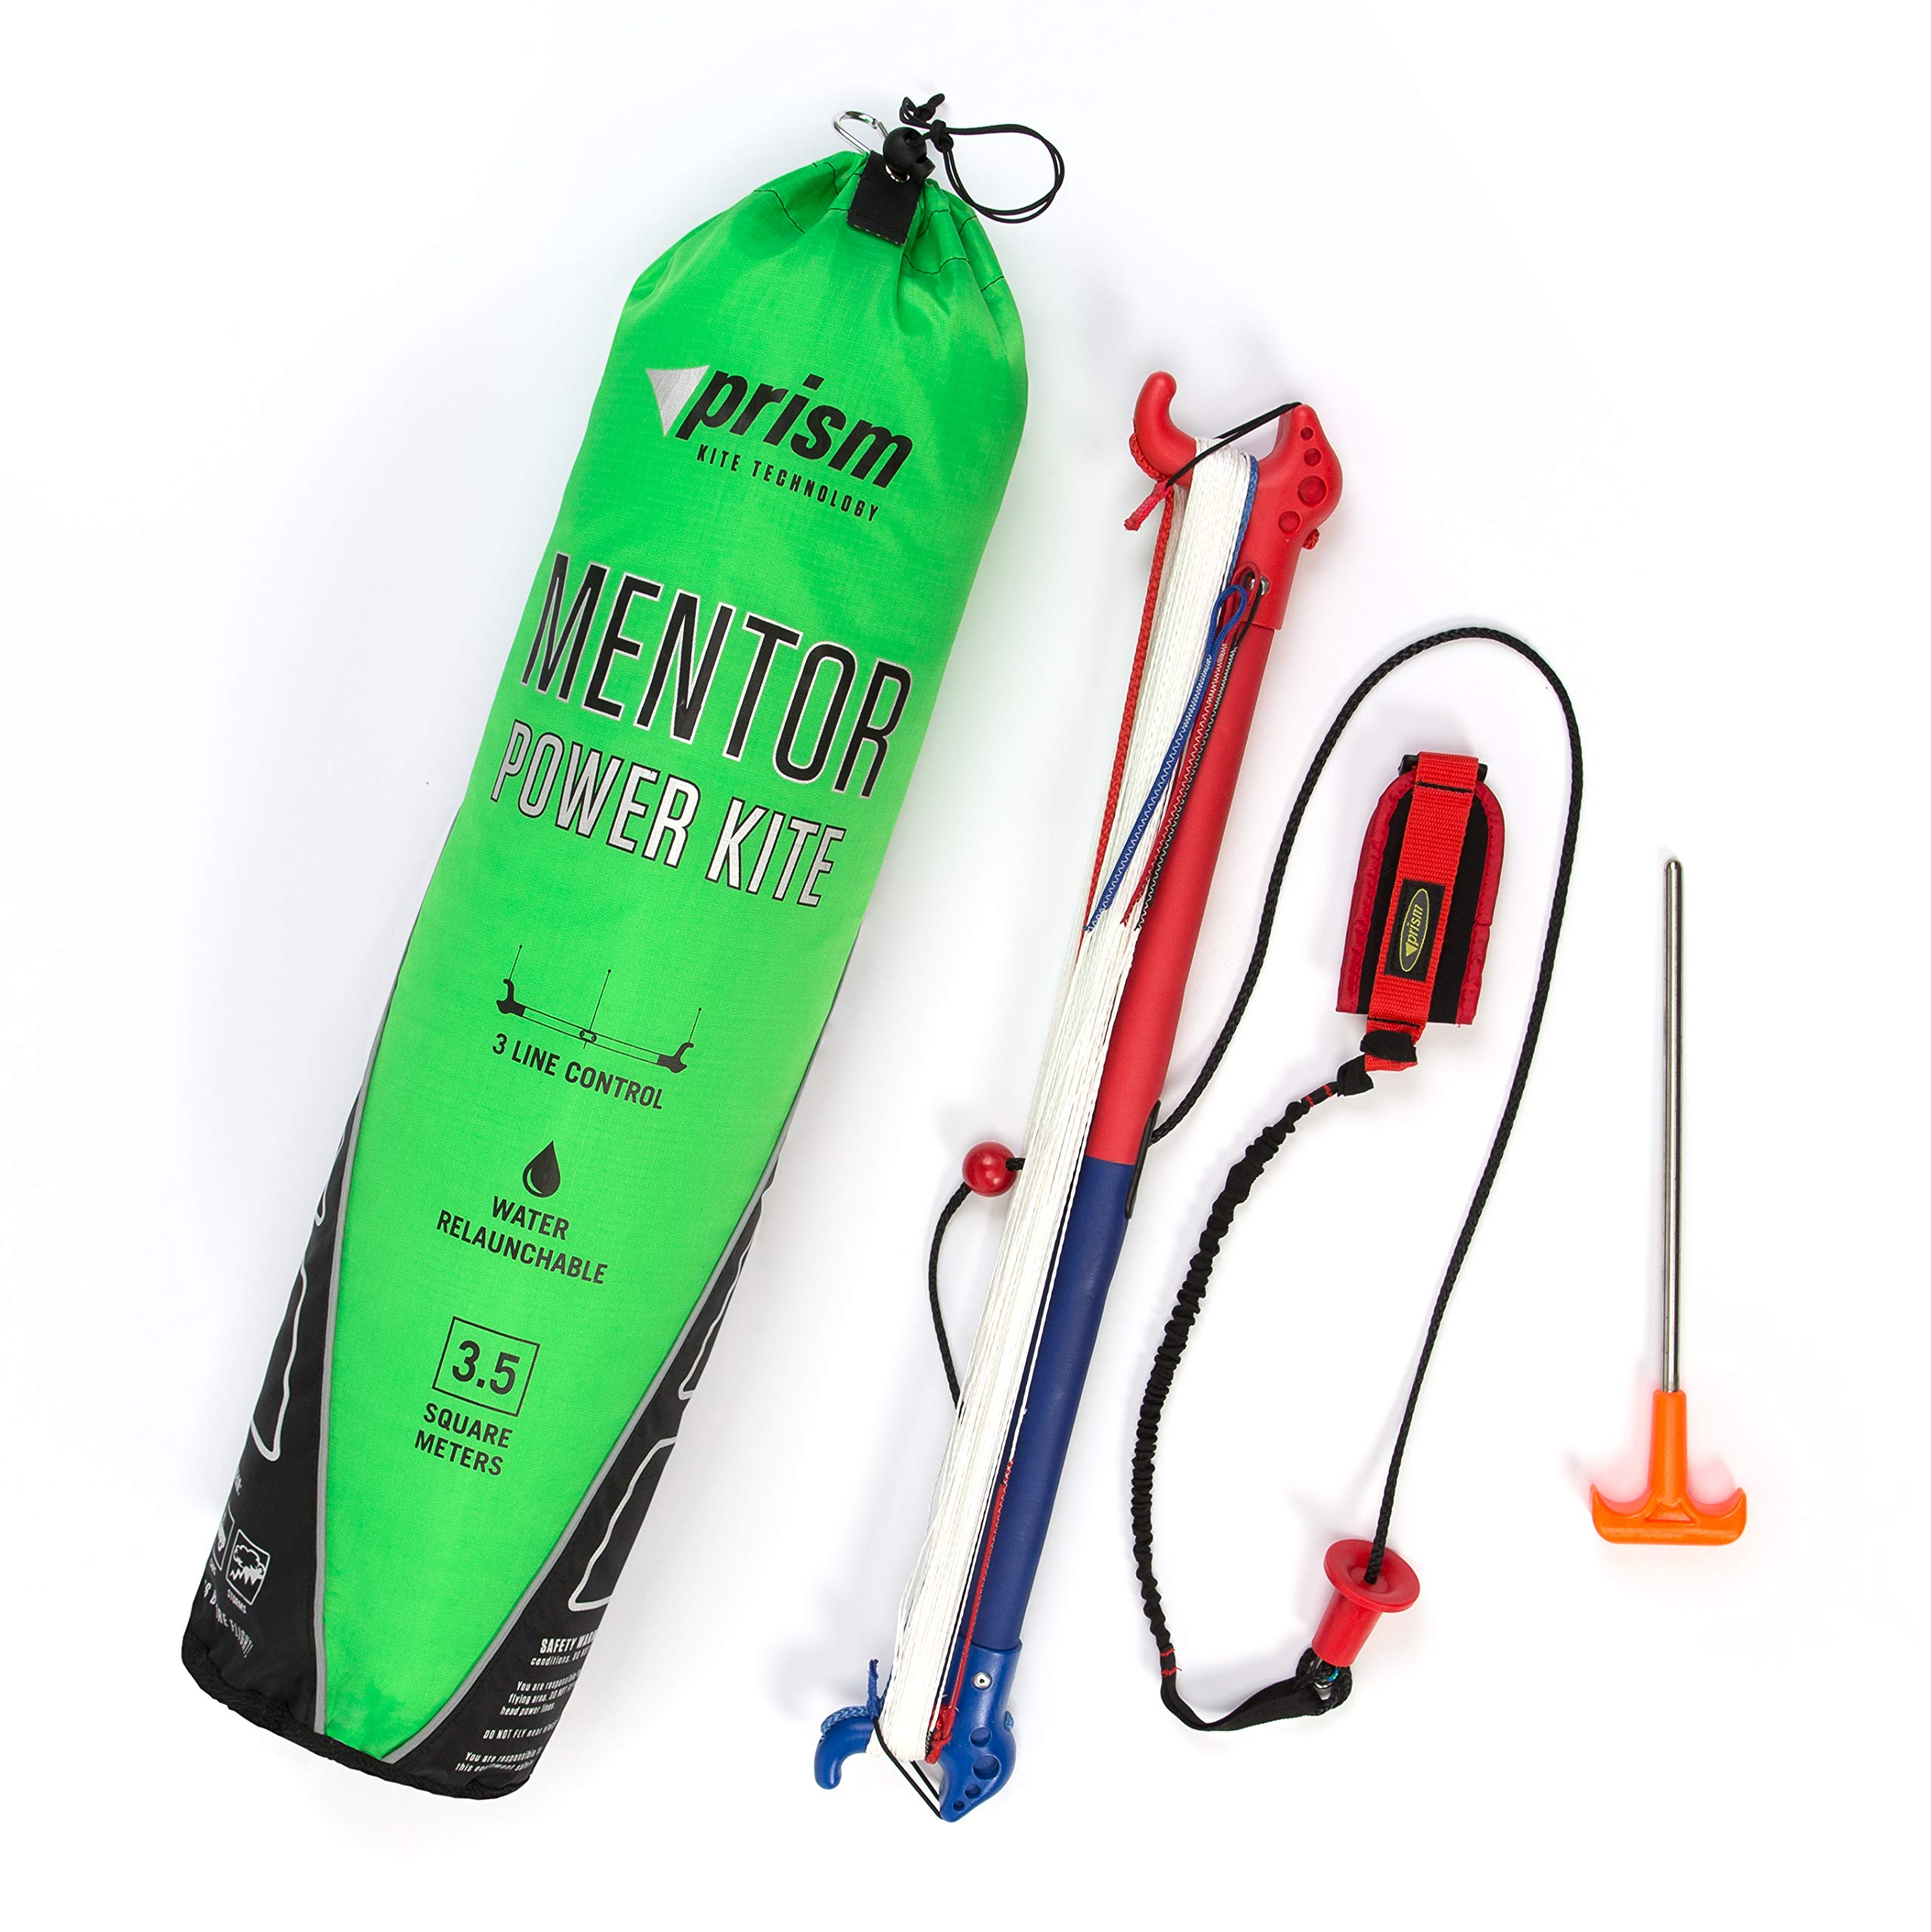 Prism Mentor 3.5m Water-relaunchable Three-line Power Kite Ready to Fly with Control bar, Ground Stake and Quick Release Safety Leash by Prism Kite Technology (Image #2)